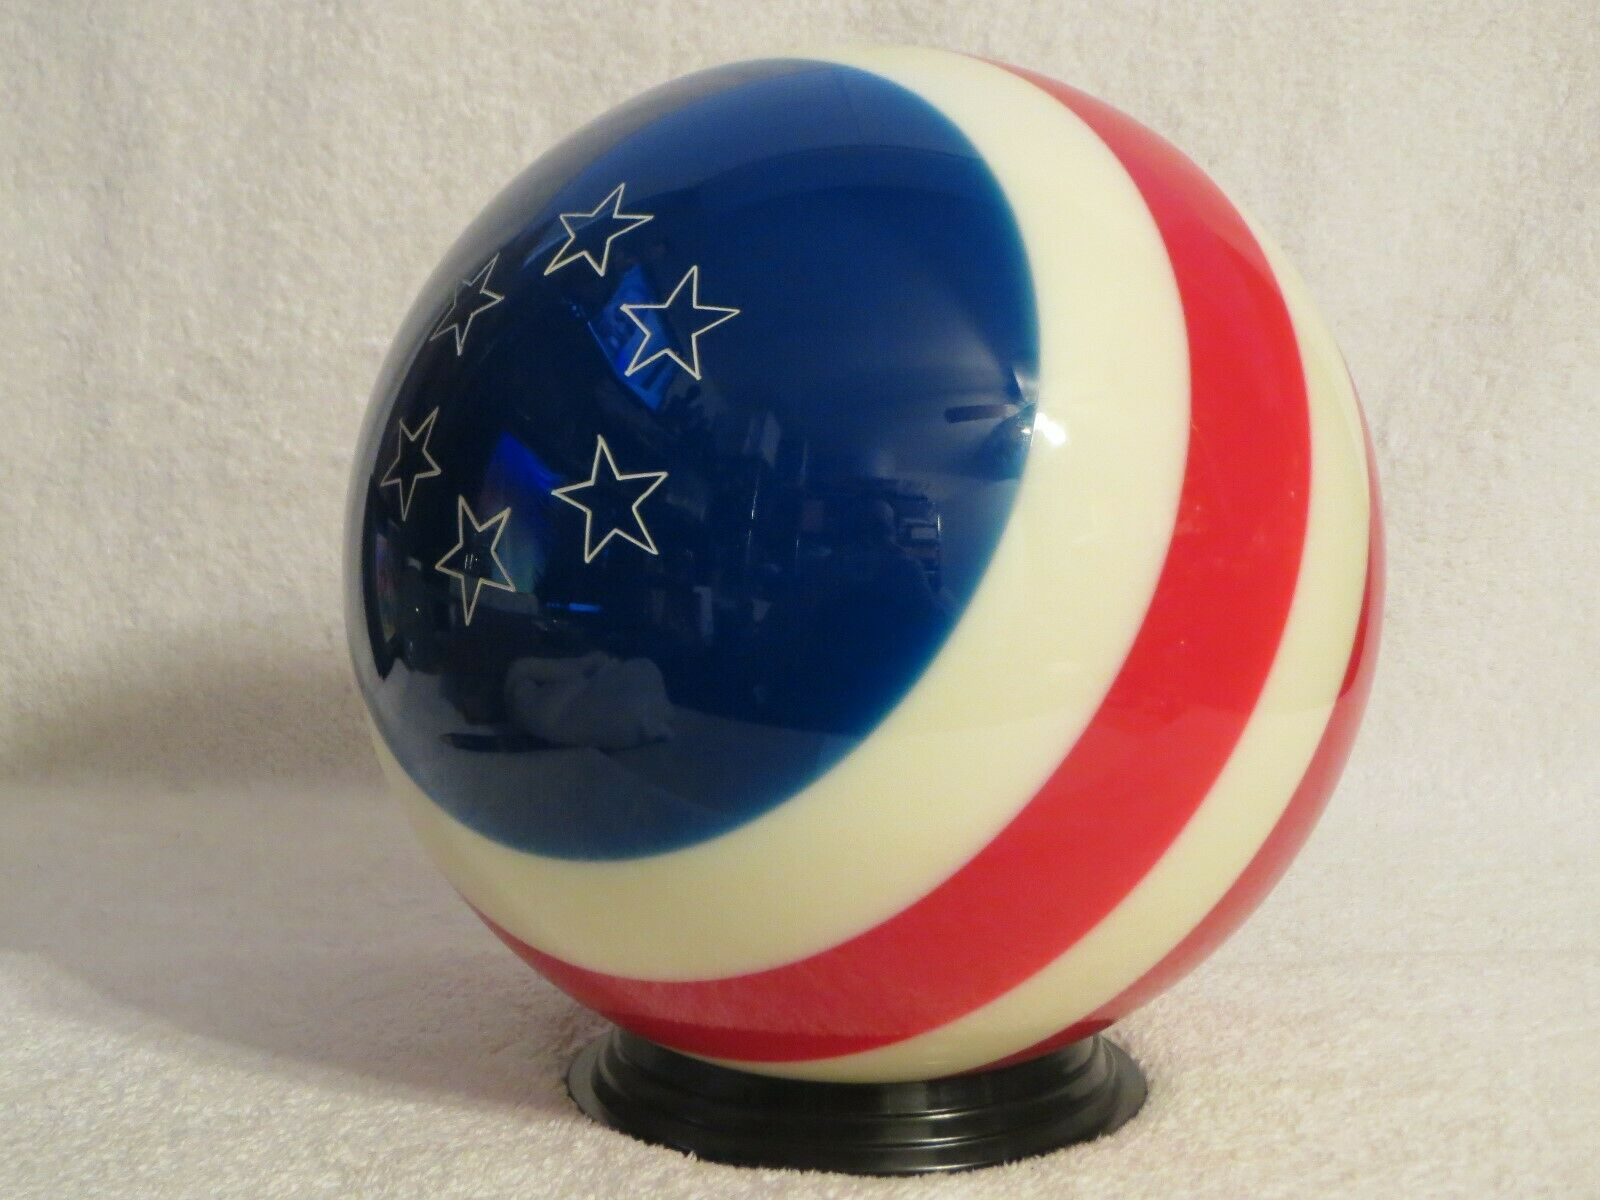 Undrilled Ebonite Patriotic Yankee Doodle Red White bluee Bowling Ball 11.5 lbs